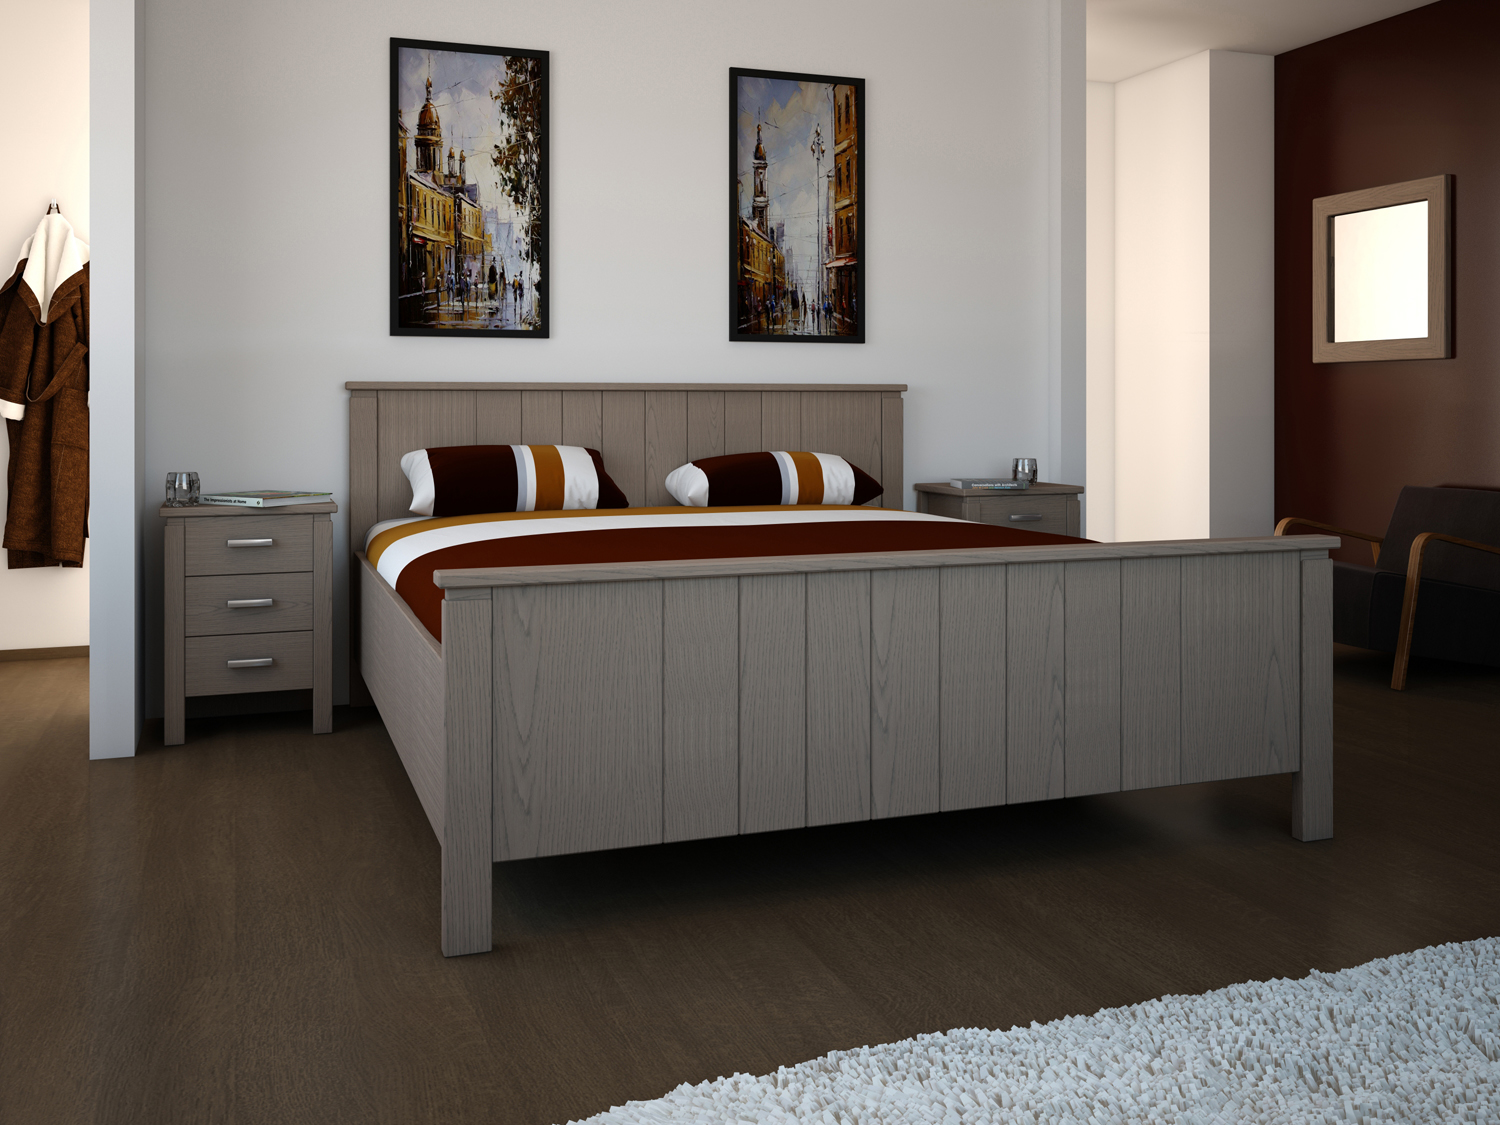 Antiek Ledikant 2 Persoons.Zondag Gelre 2 Pers Ledikant Furniture Collection Of Beds